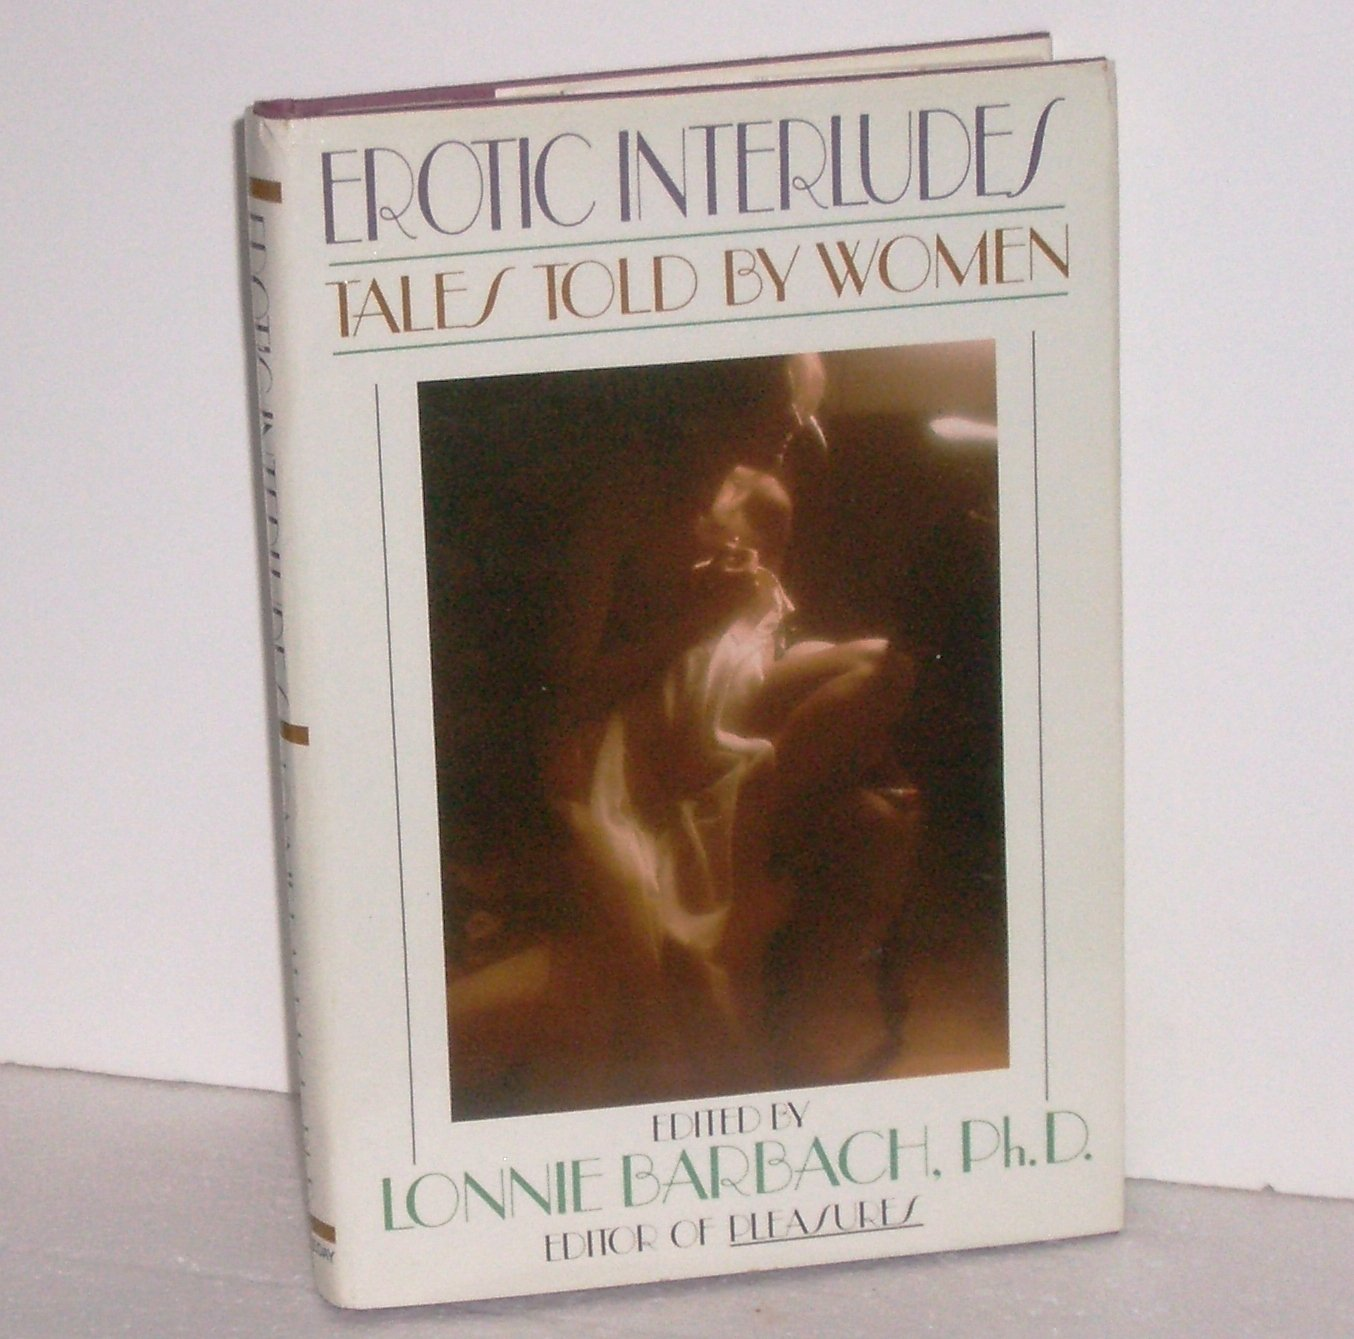 Erotic Interludes Tales Told by Women by LONNIE BARBACH, Ph.D. Hardcover with Dust Jacket 1986